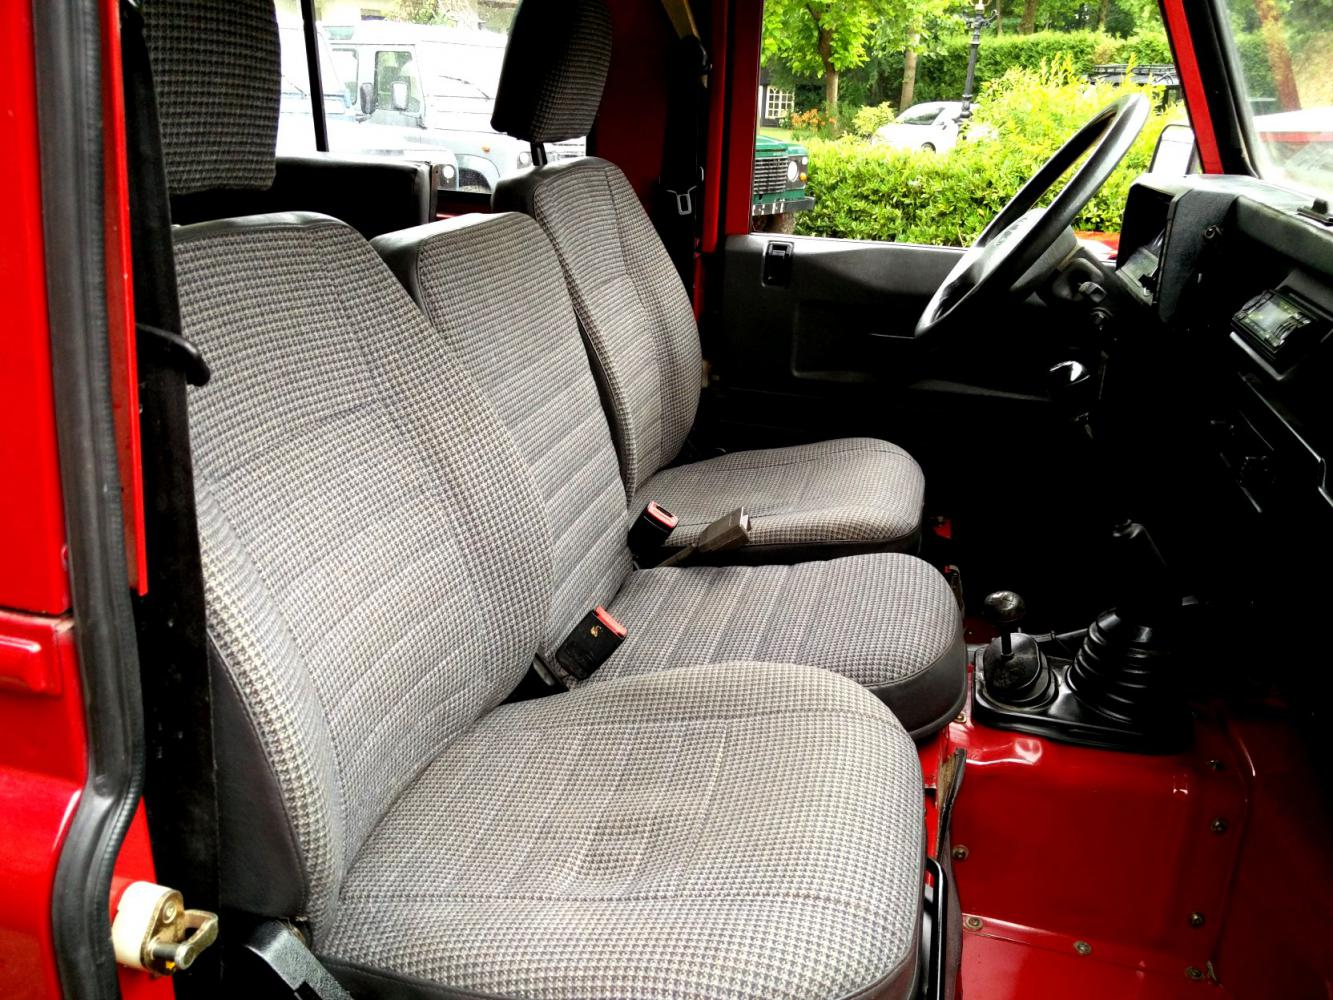 Click image for larger version  Name:1992 LR LHD Defender 90 Red 200 Tdi interior front seats.jpg Views:223 Size:249.0 KB ID:263674